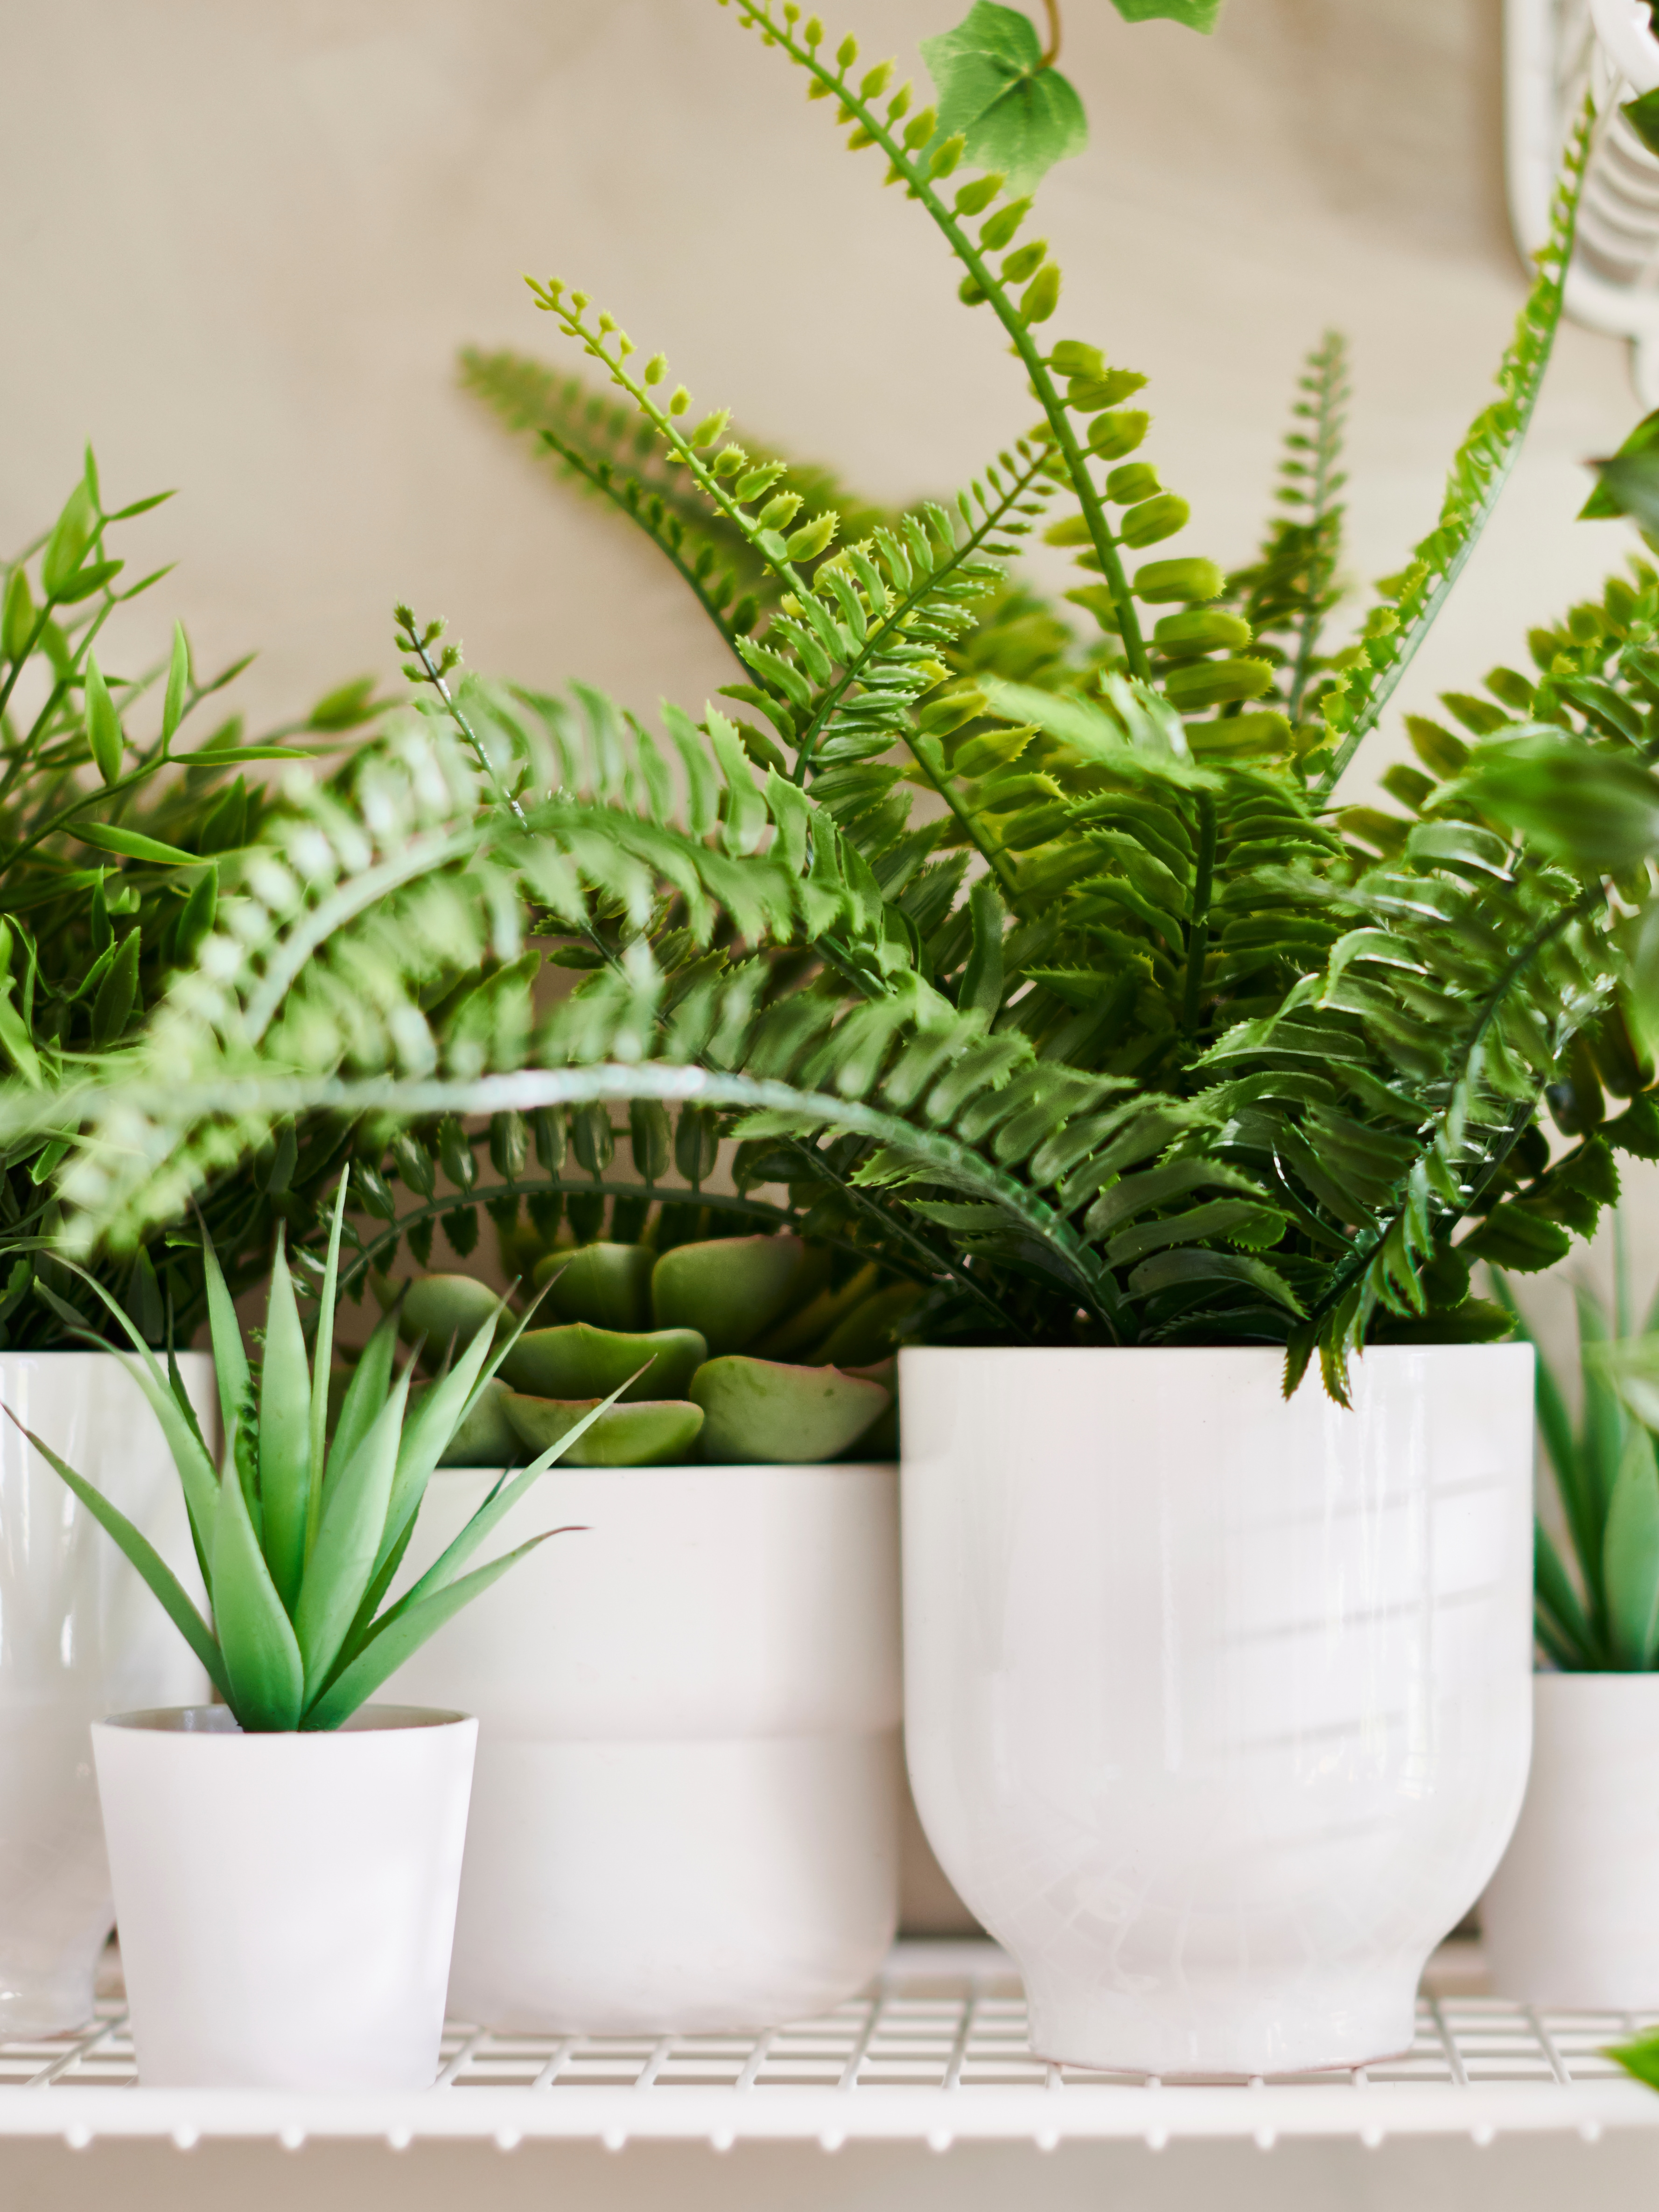 Different types of FEJKA artificial plants including ferns, succulents and hanging, clustered together on a white shelf.